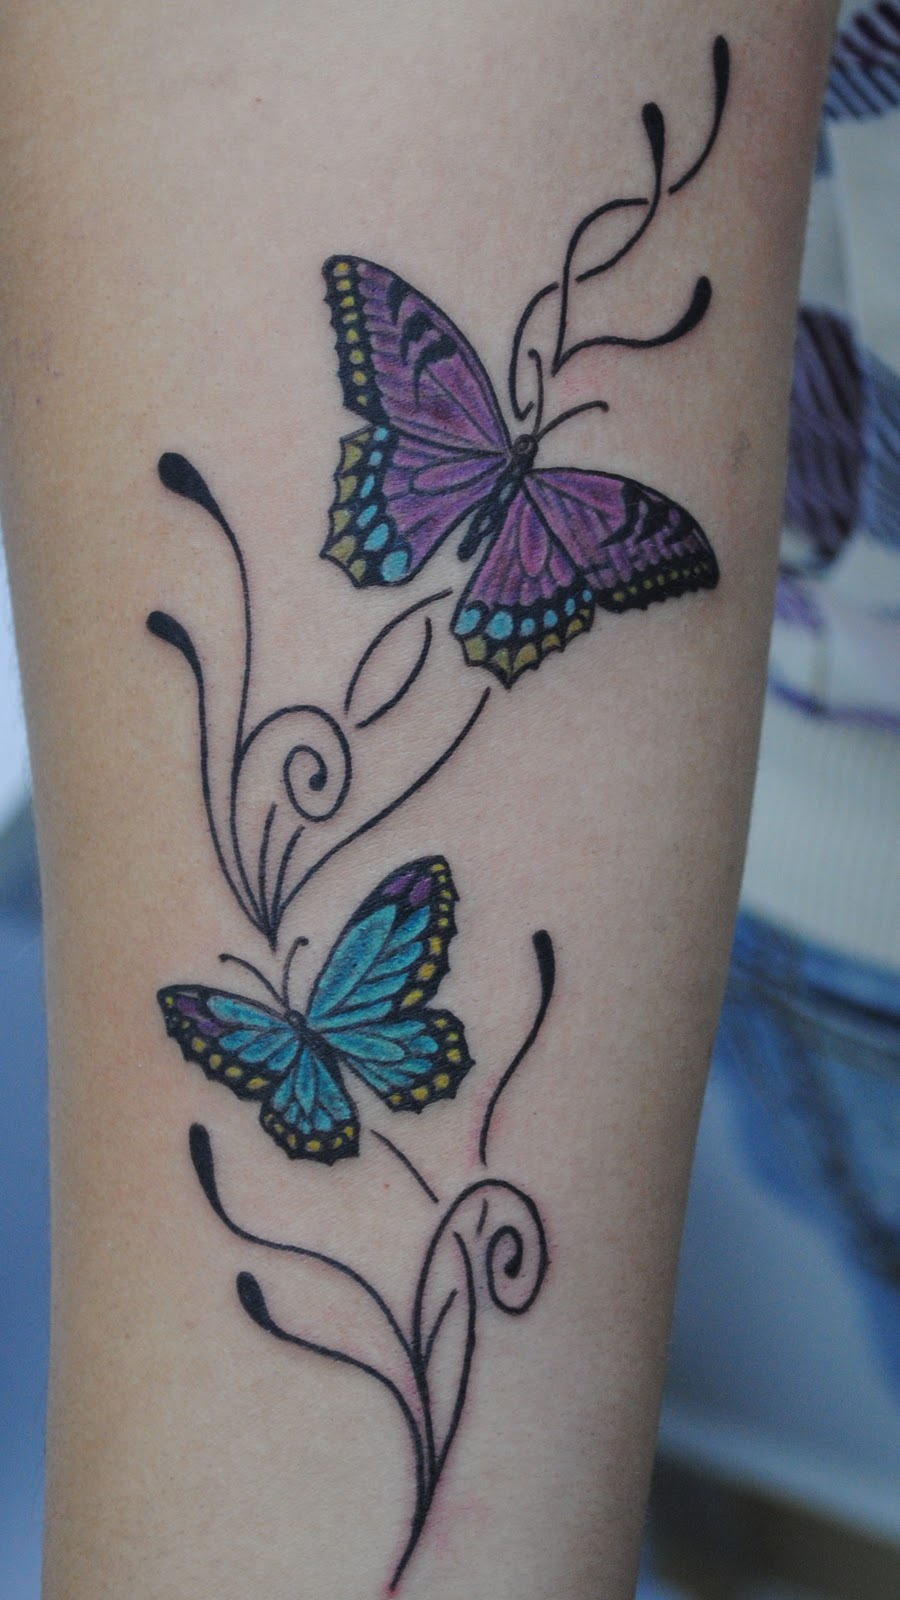 tatuaje mariposas alas de mariposas tattoo car interior design. Black Bedroom Furniture Sets. Home Design Ideas